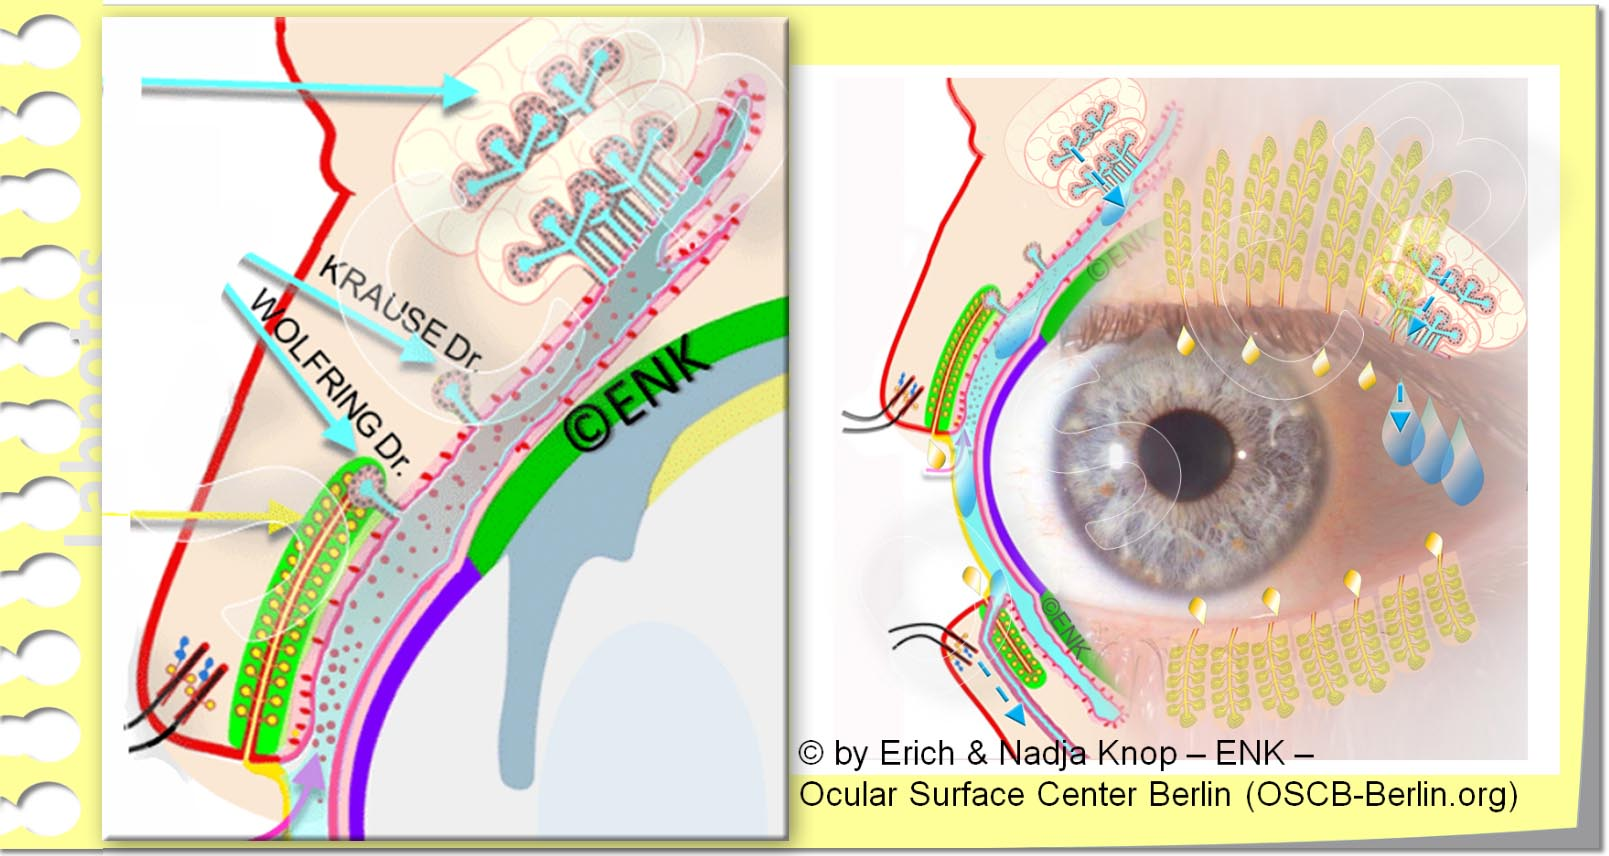 Glands of the Ocular Surface, Tränendrüsen der Augenoberfläche_RE-Montage_.jpg